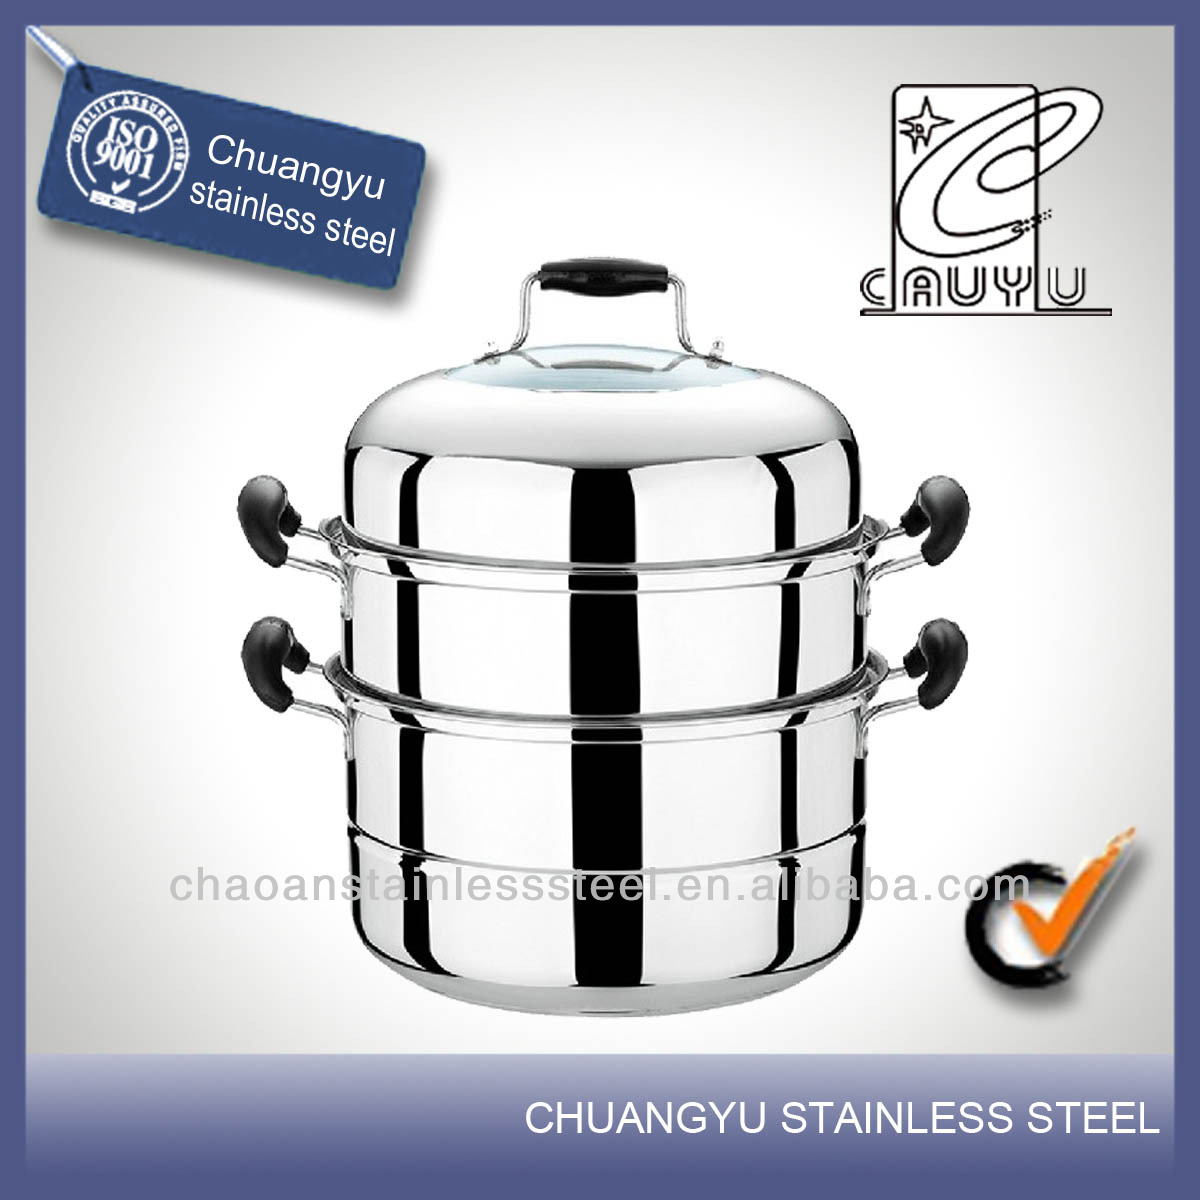 Stainless steel high quality stainless steel 30cm steamer on sale